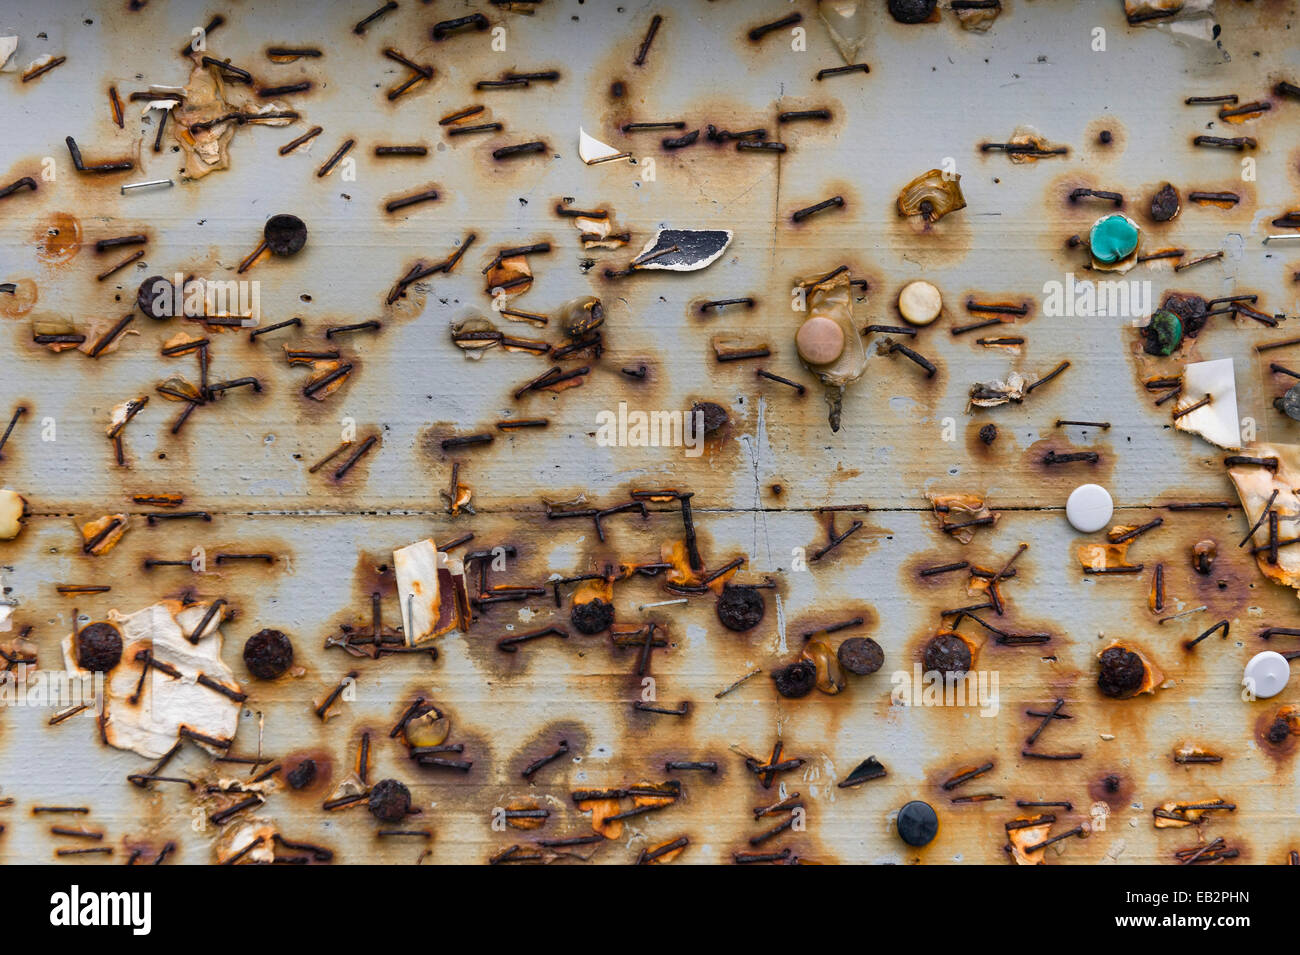 Remnants of rusted tacks and staples on a board, Gásadalur, Vágar, Faroe Islands, Denmark - Stock Image